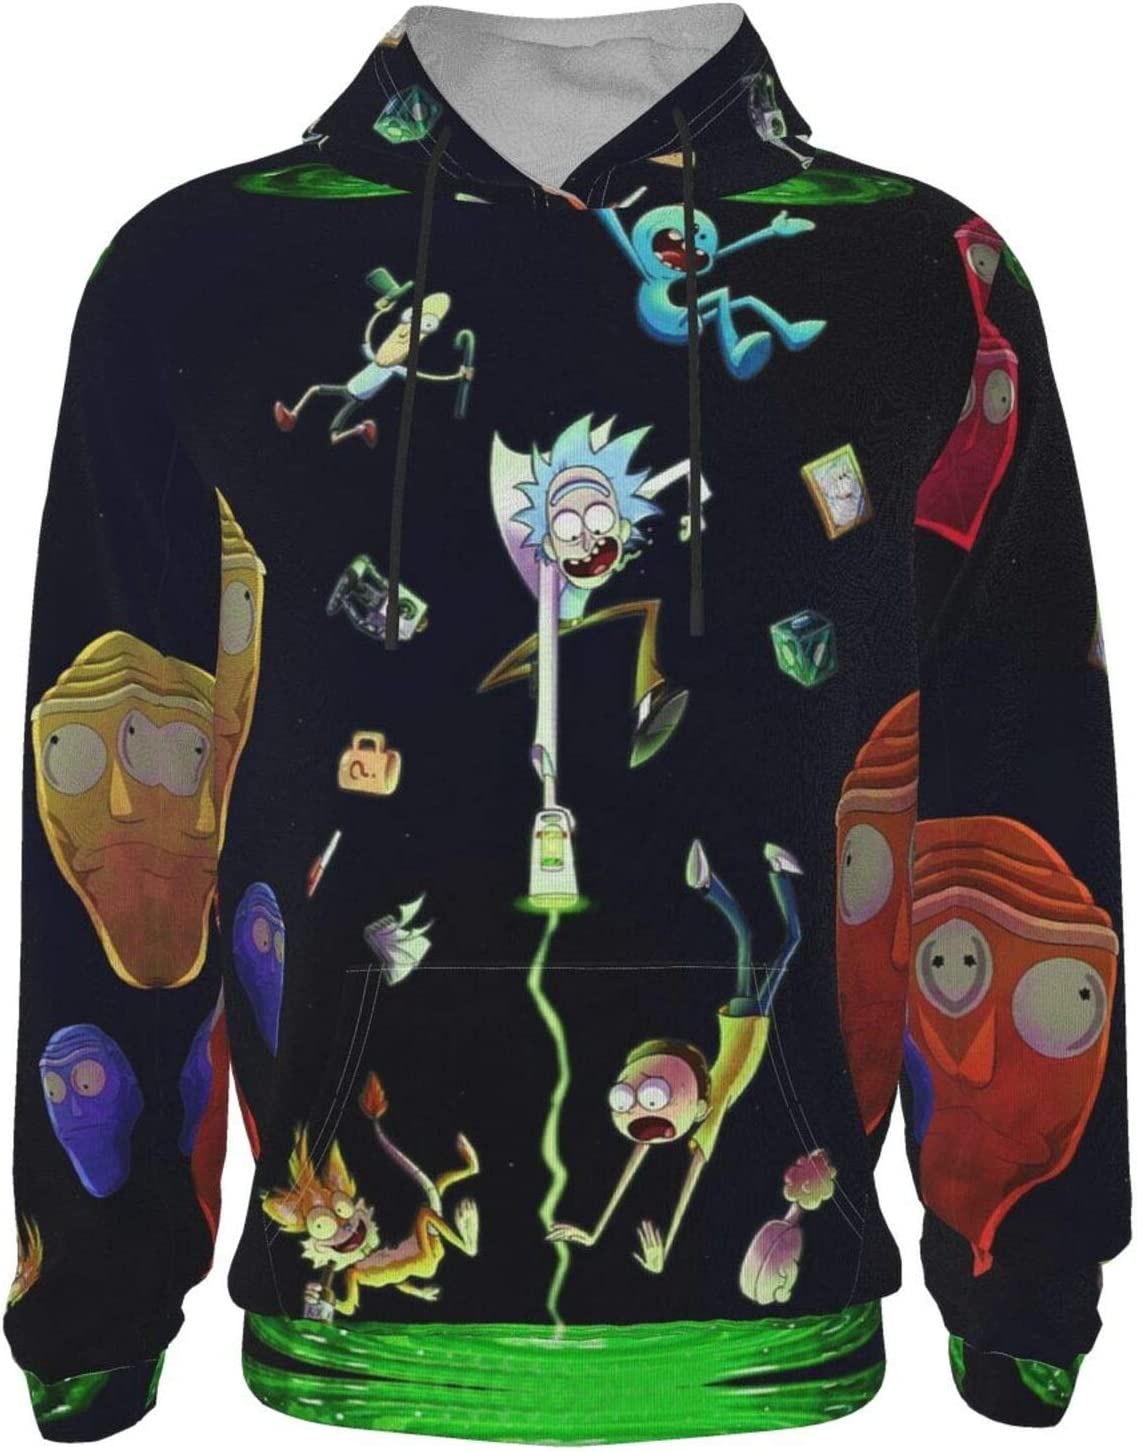 Unisex Teen Boys Kids Thick Rick-Morty Hoodies Winter Jacket with Pocket Hooded Sweatshirts for Boys,Girls 7-8 Years